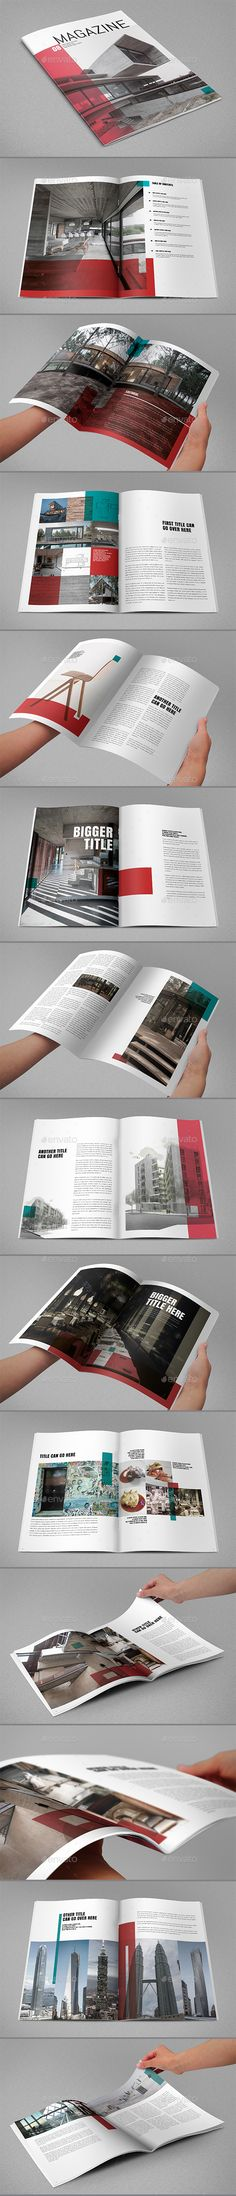 Cool Magazine Template InDesign INDD. Download here: https://graphicriver.net/item/cool-magazine/17544102?ref=ksioks